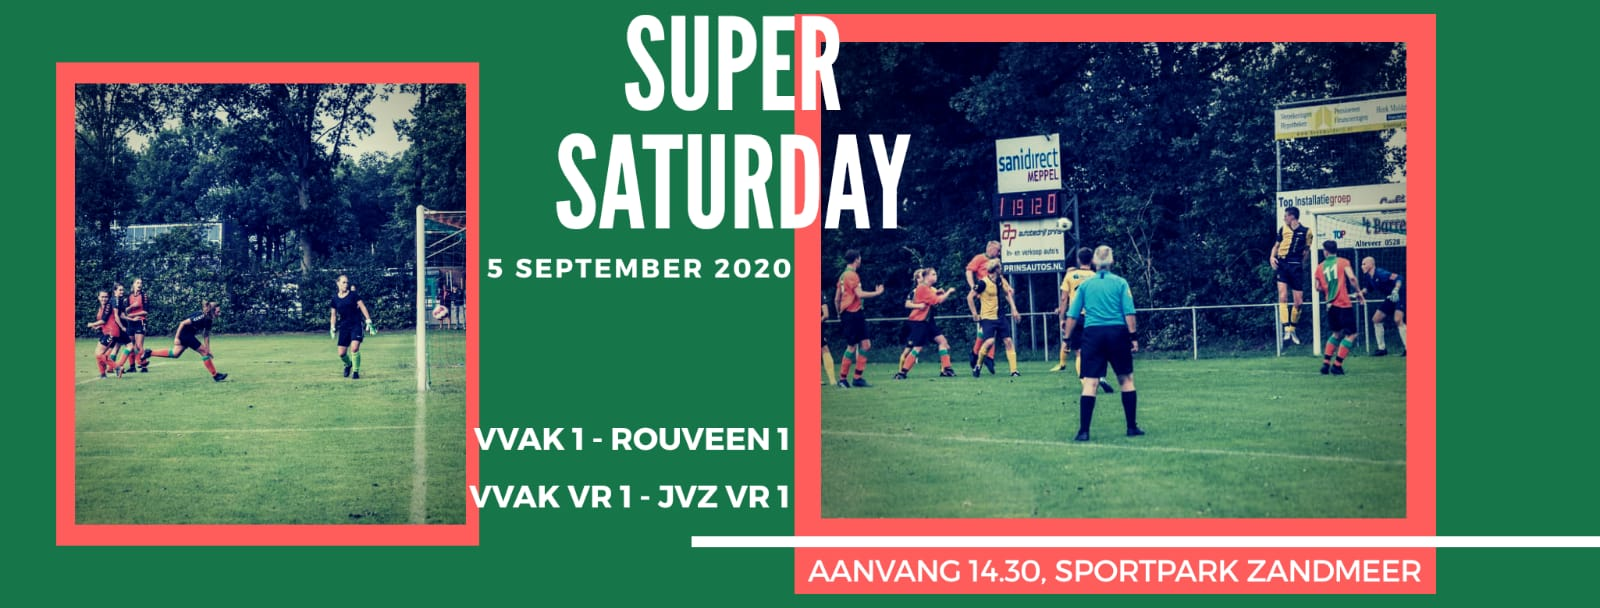 Registratie Super Saturday (5 sept)